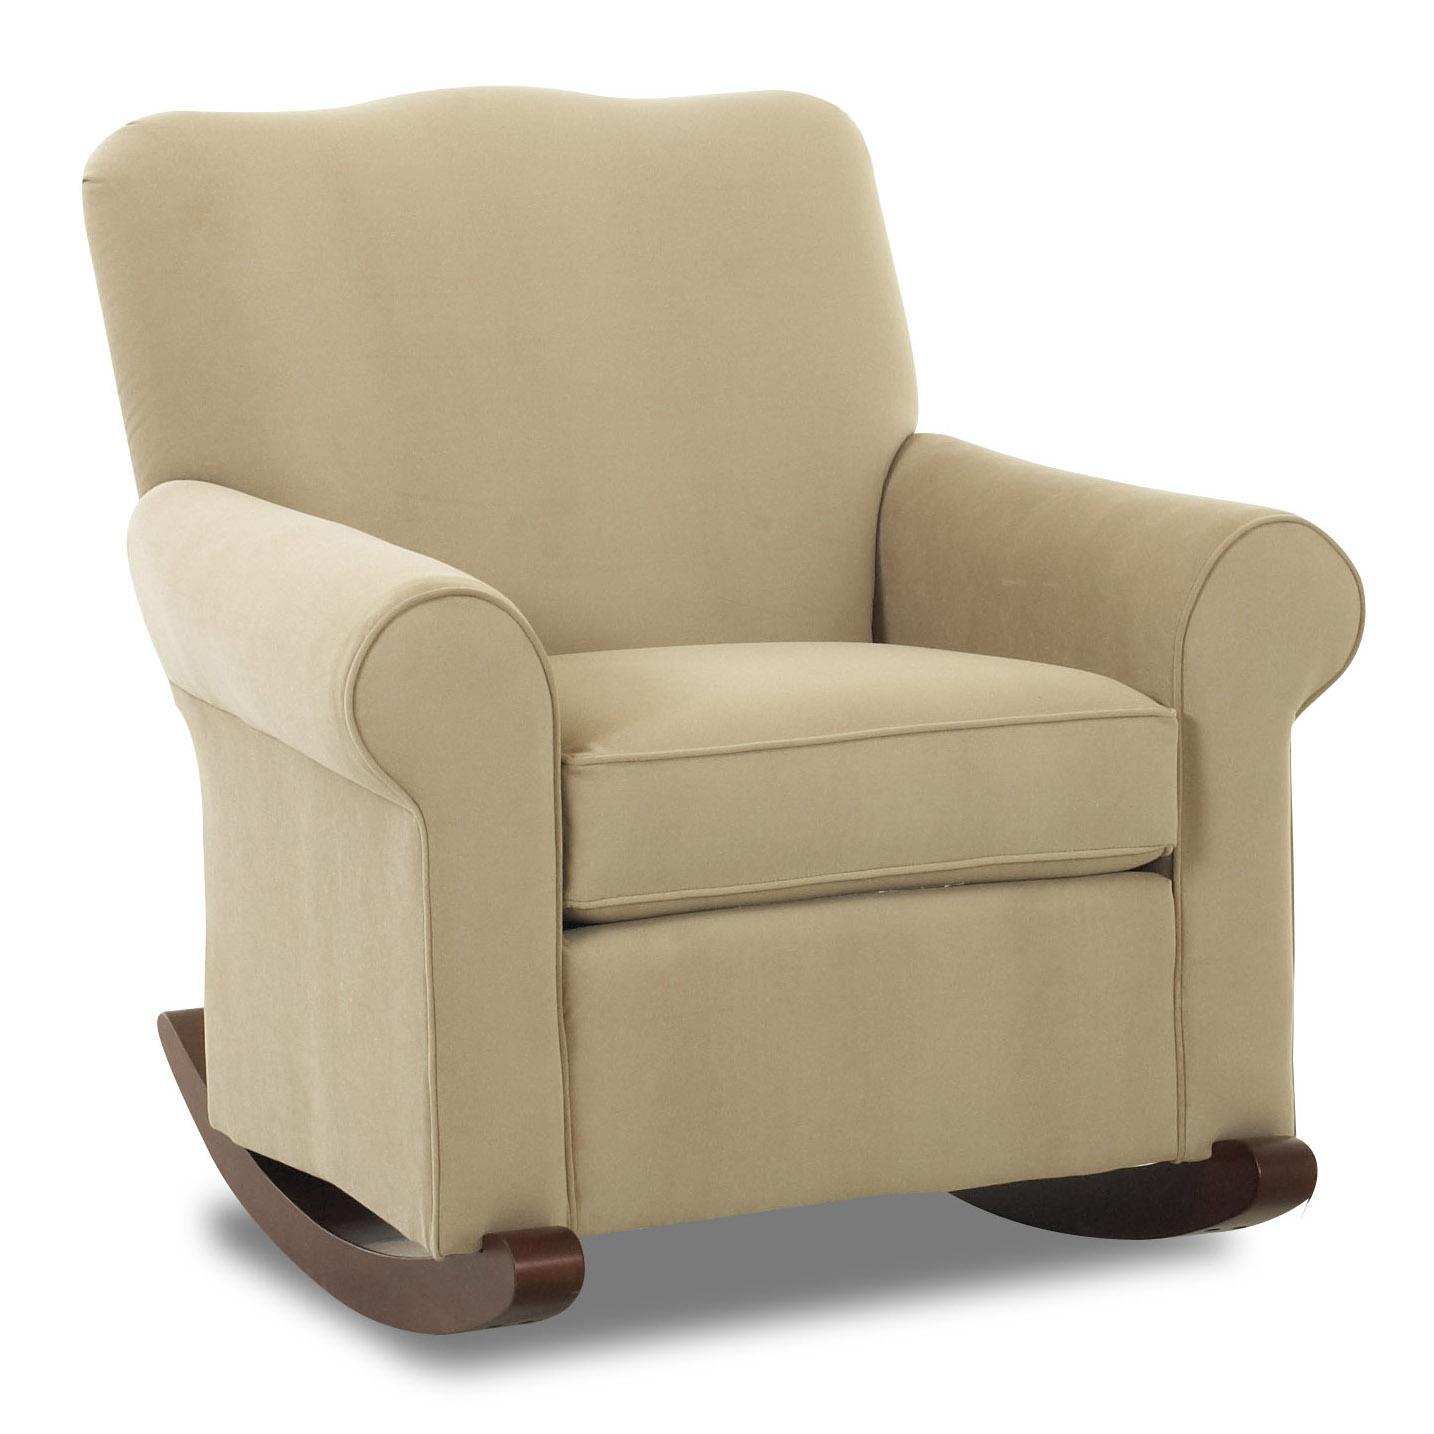 Klaussner Chairs And Accents Old Town Upholstered Rocker